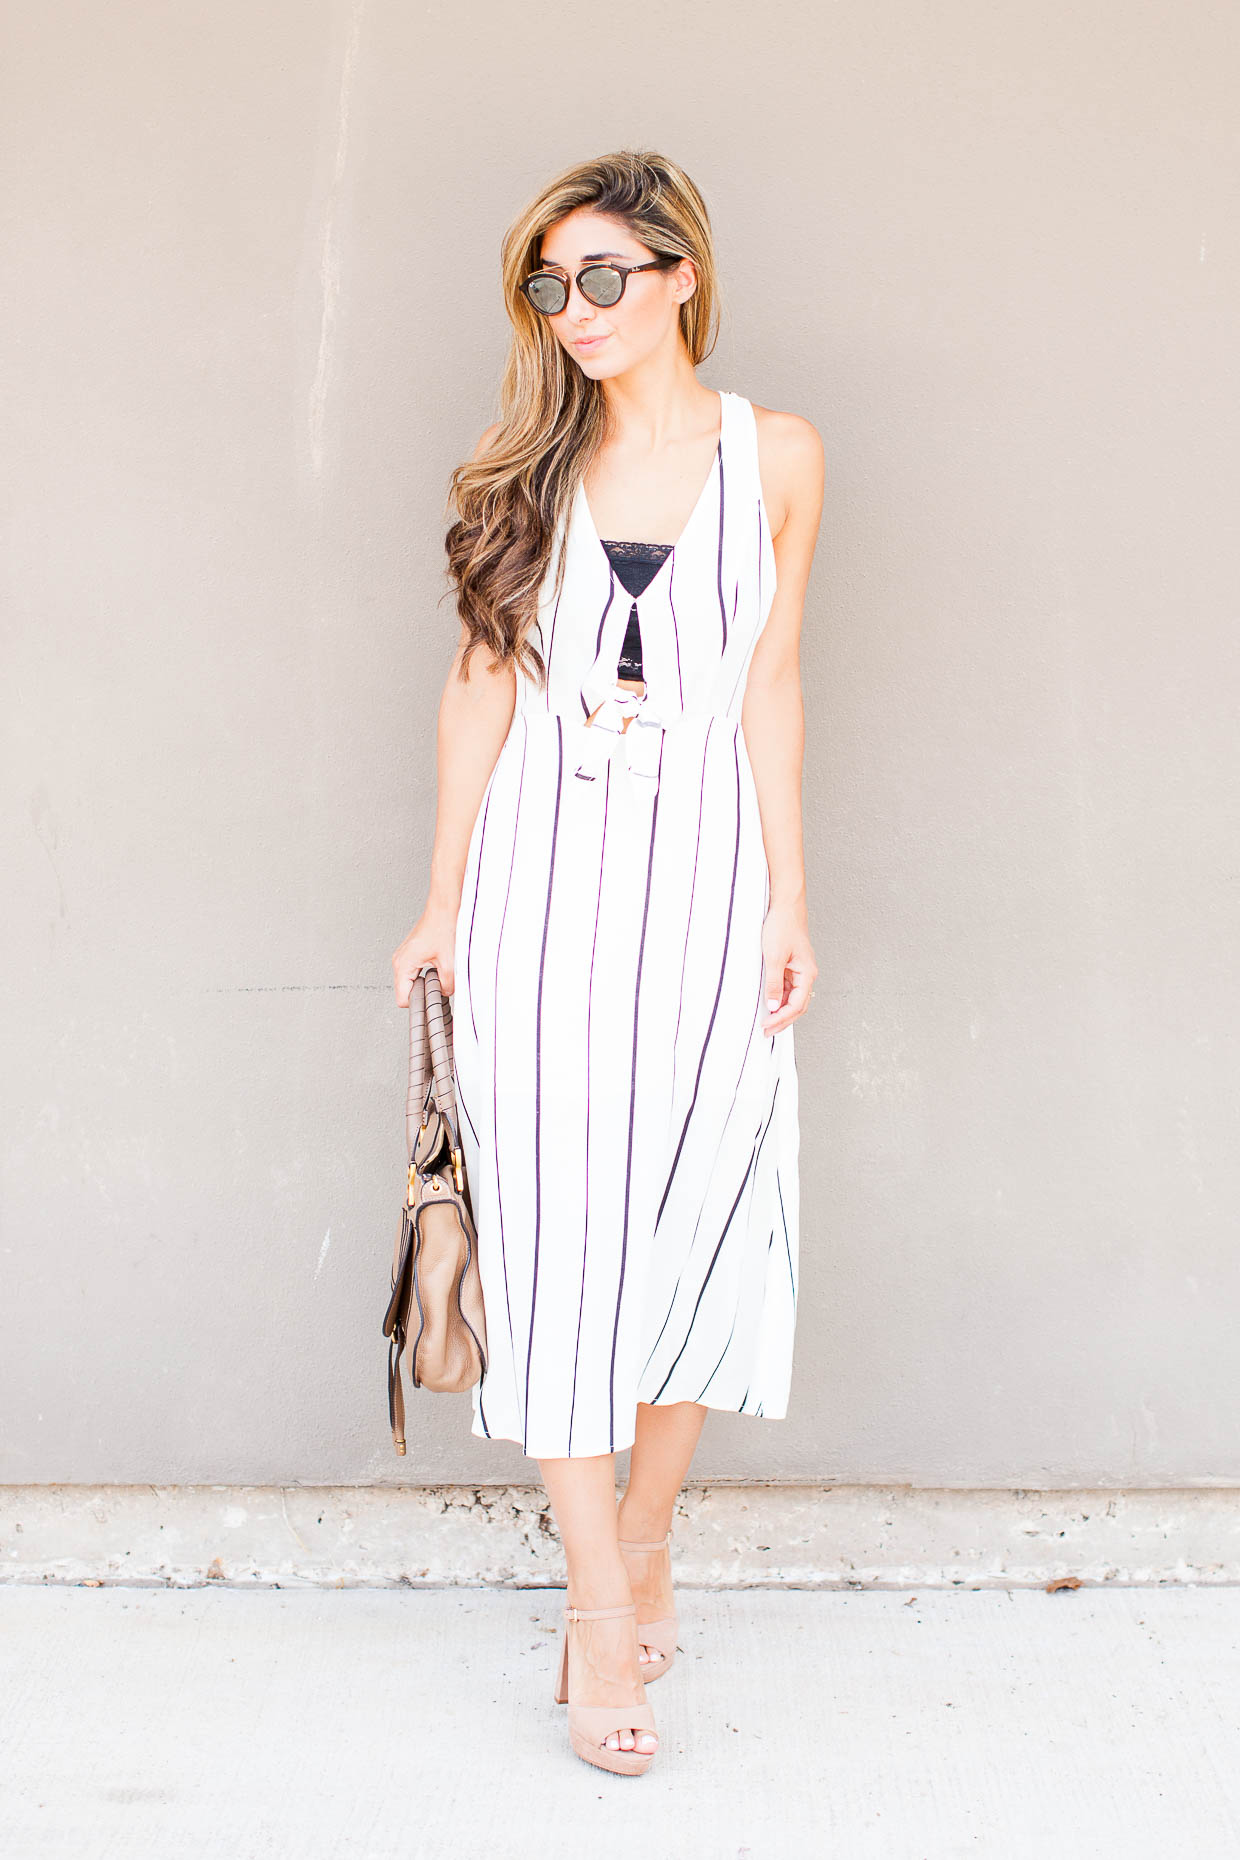 Fashion Blogger The Darling Detail is wearing an ASTR Tie Front Midi Dress, a Free People Scalloped Lace Bandeau, with Vince Camuto 'Krysta' Sandals, Ray-Ban 'Highstreet' Sunglasses, and holding the Chloe 'Medium Marcie' Leather Satchel.